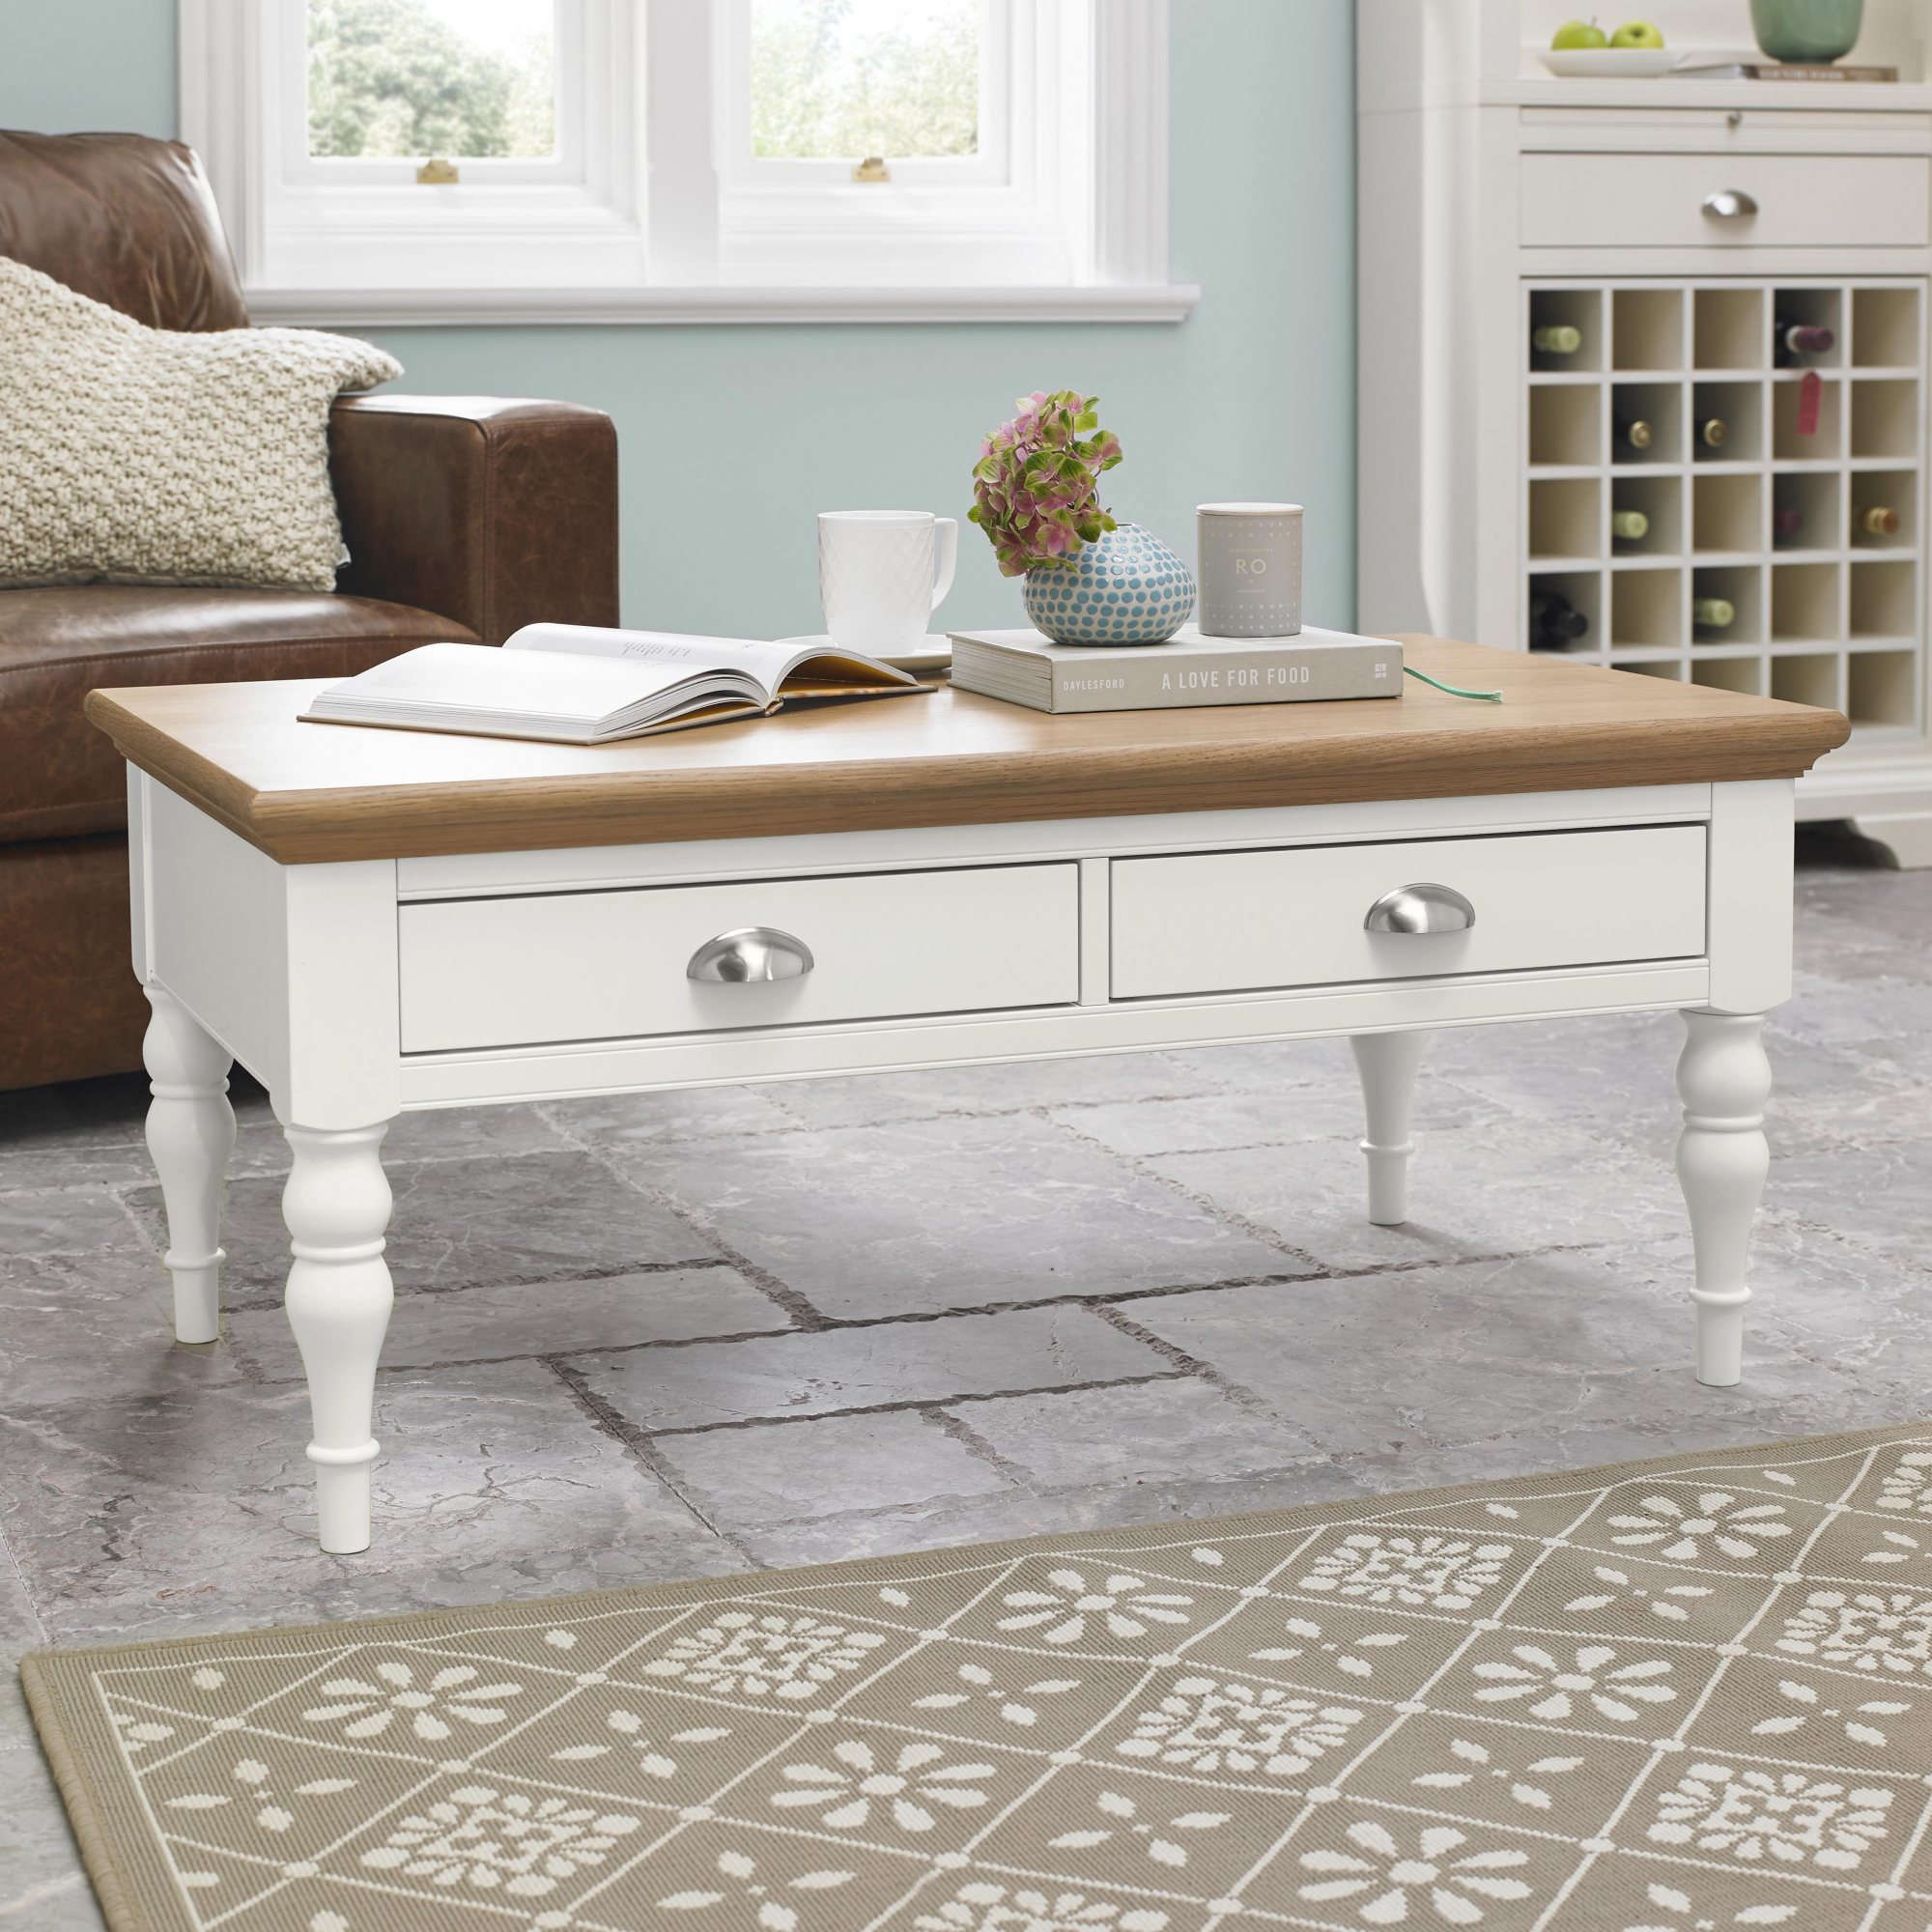 KYRA TWO TONE COFFEE TABLE - L106cm x D60cm x H46cm